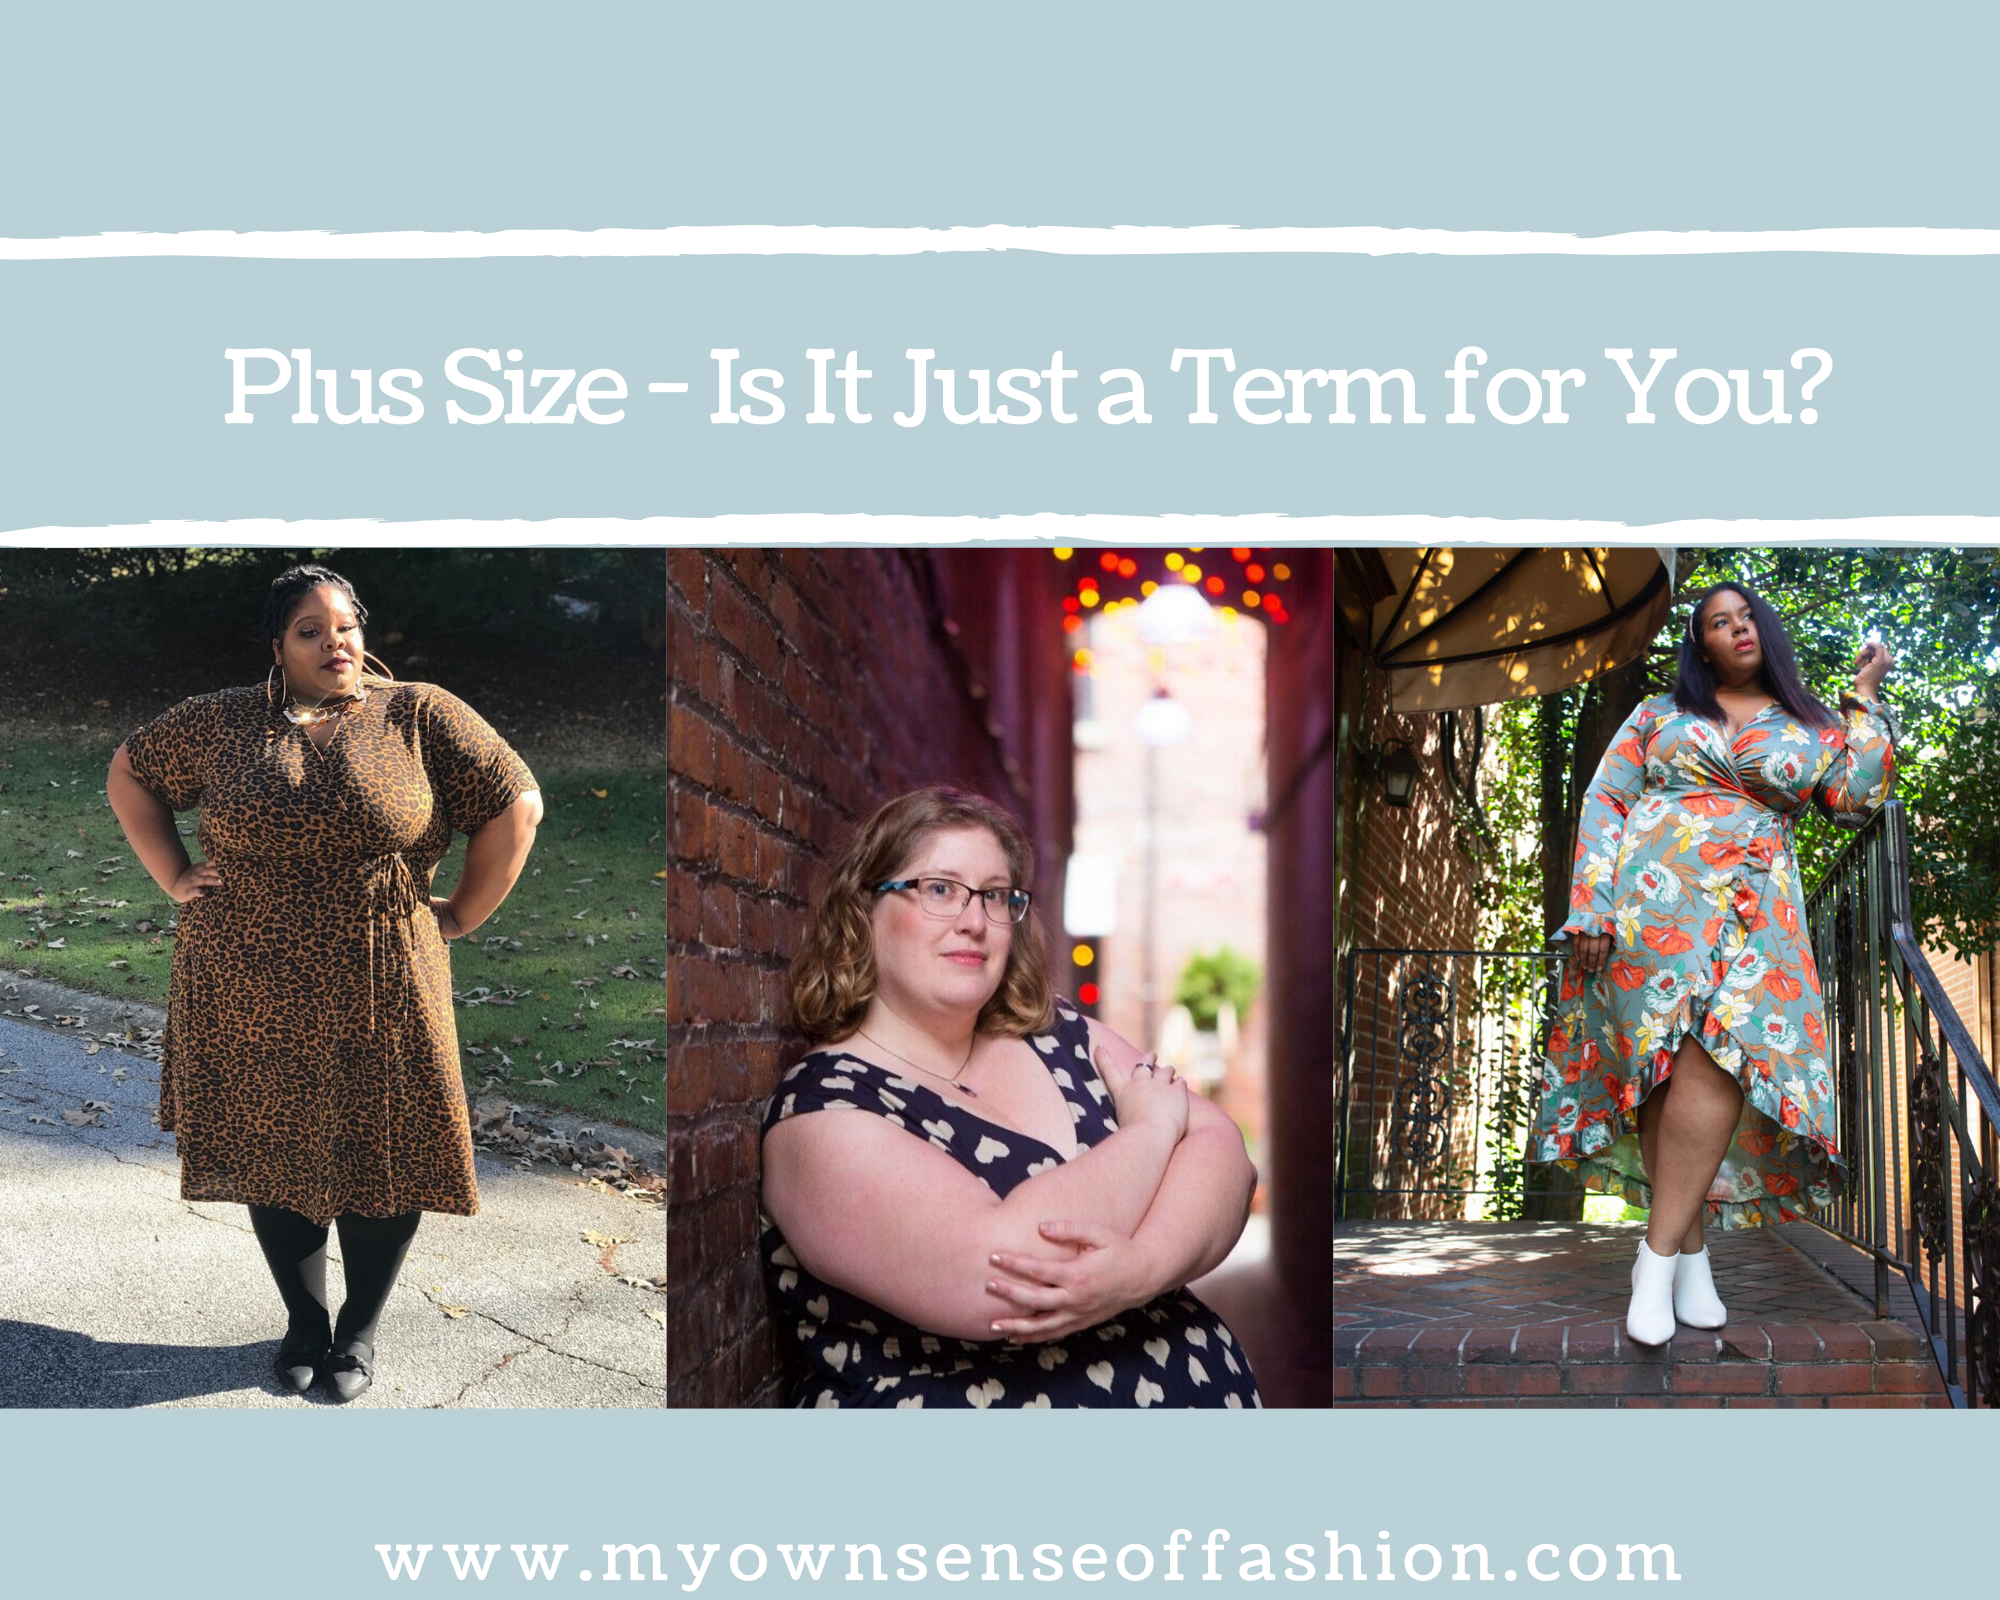 Plus Size- Is It Just a Term for You?